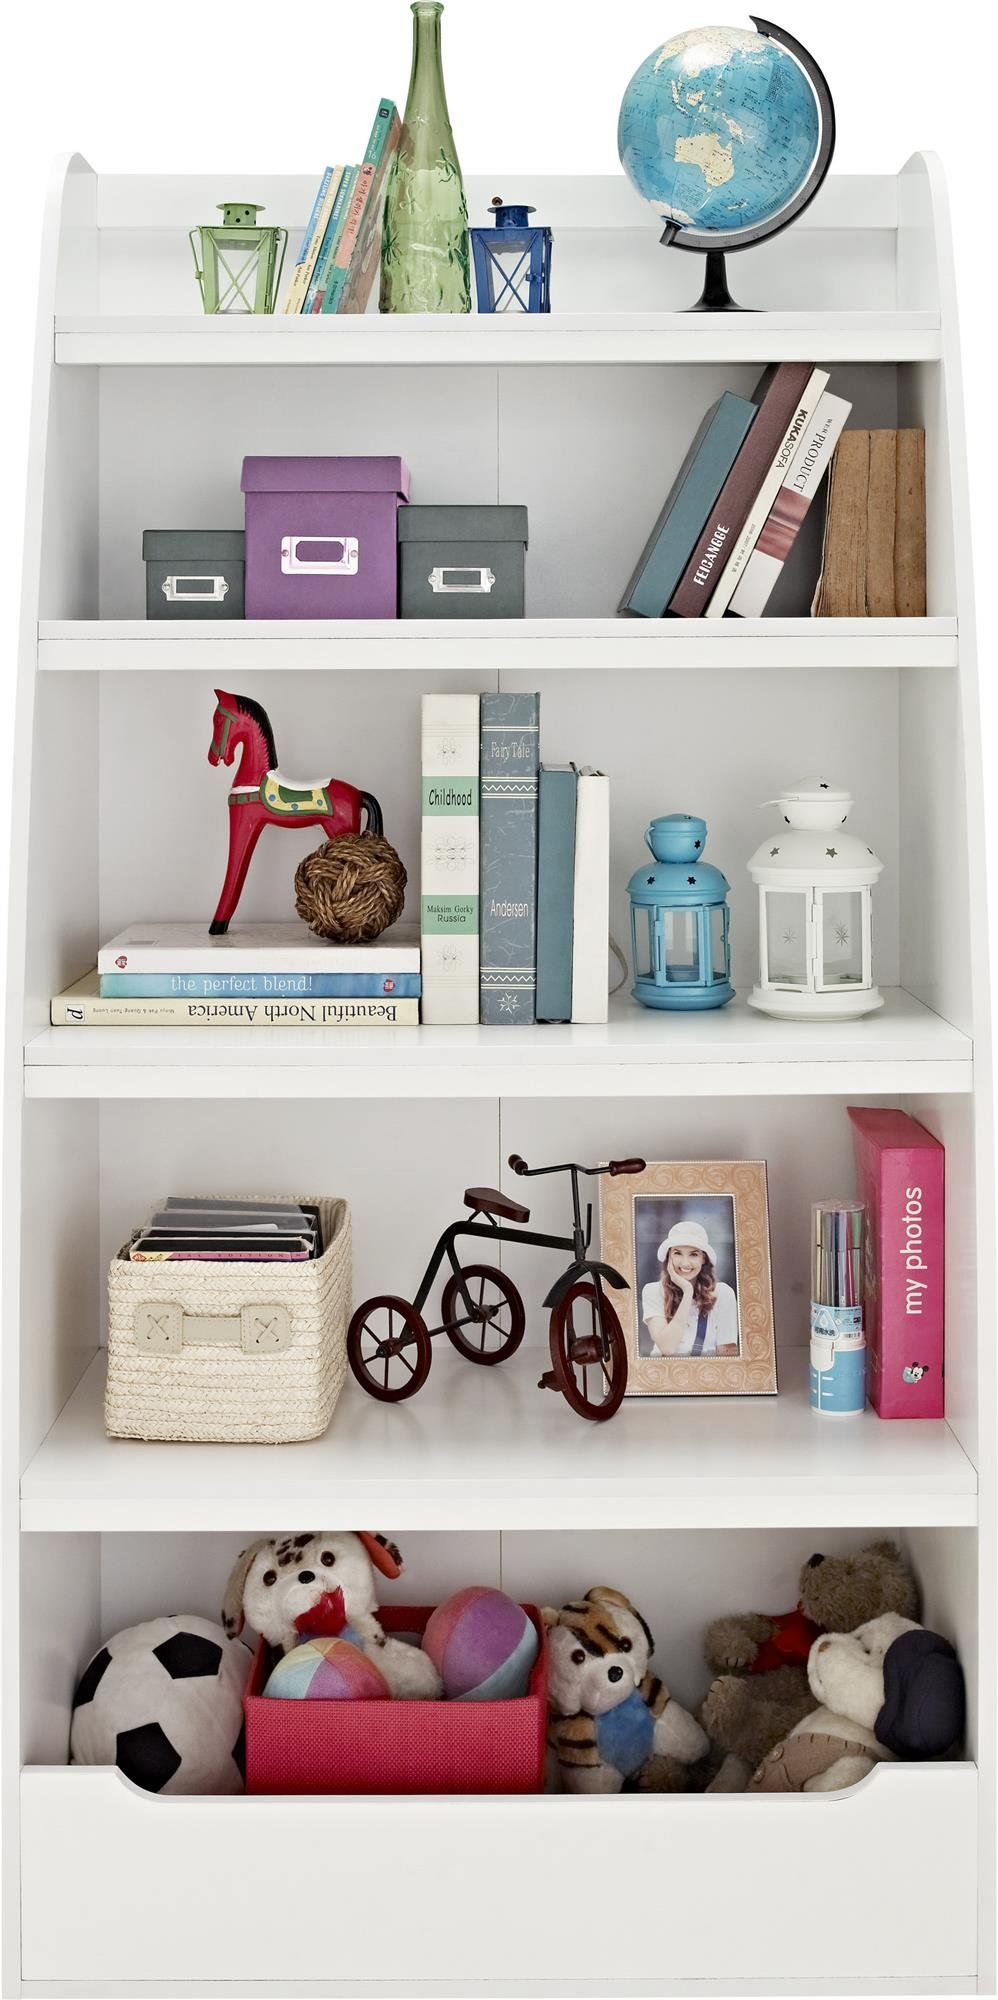 Ameriwood Home Hazel Kids' 4 Shelf Bookcase, White by Ameriwood Home (Image #3)